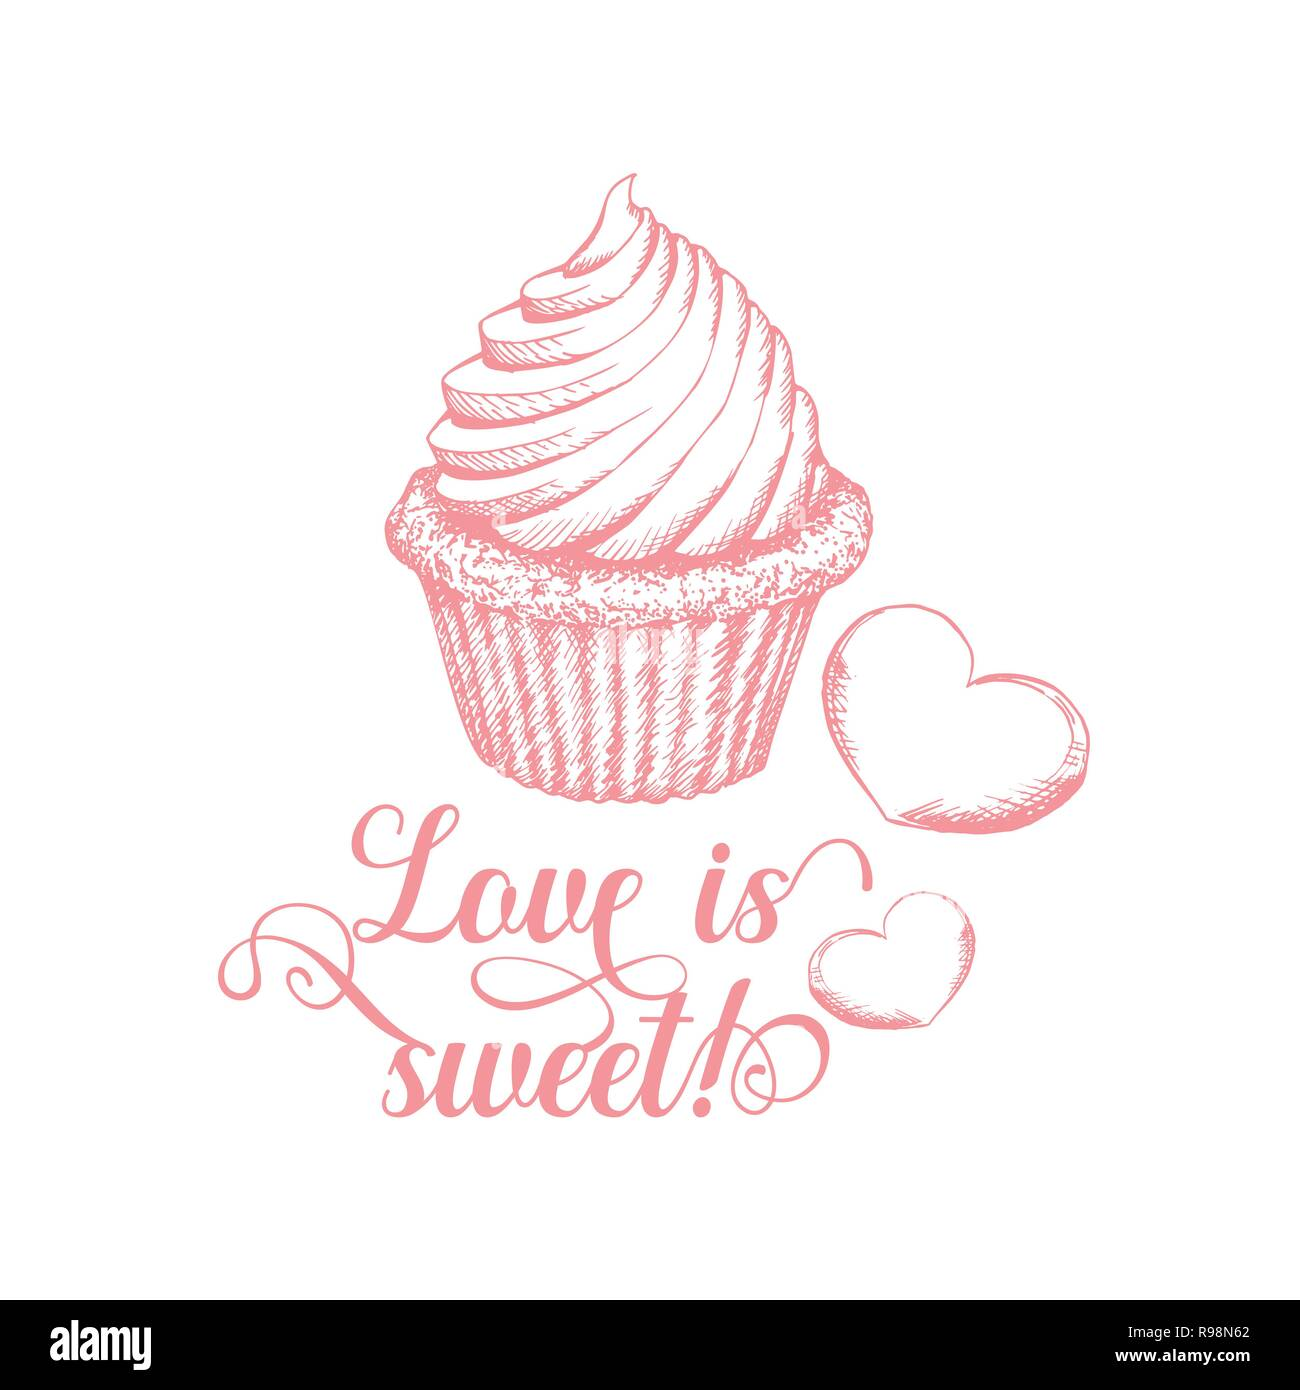 Cupcake with lettering sketch illustration  Sweet love quote